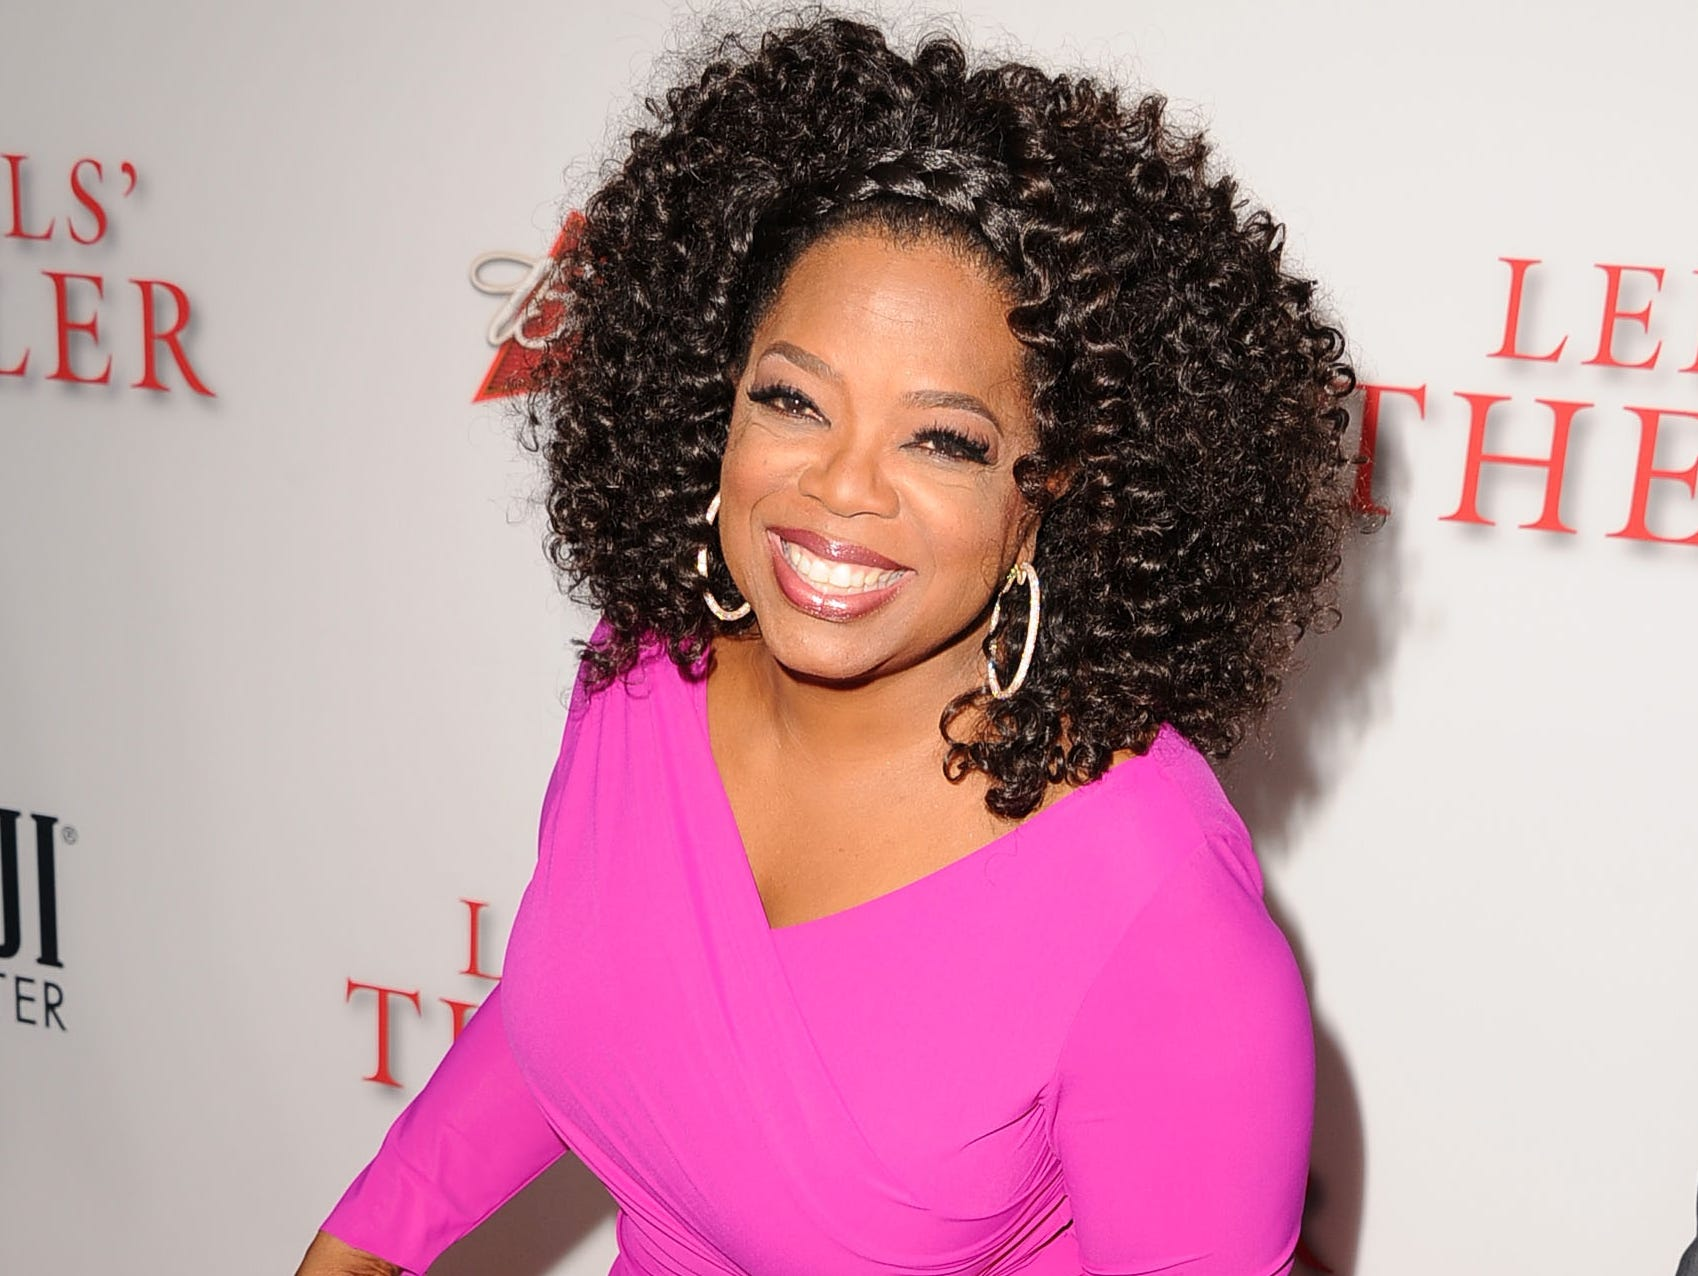 Oprah shows off her curves in a bright pink figure-hugging dress at the film's L.A. premiere on Aug. 12. Her megawatt smile and voluminous curls are the perfect accessories.